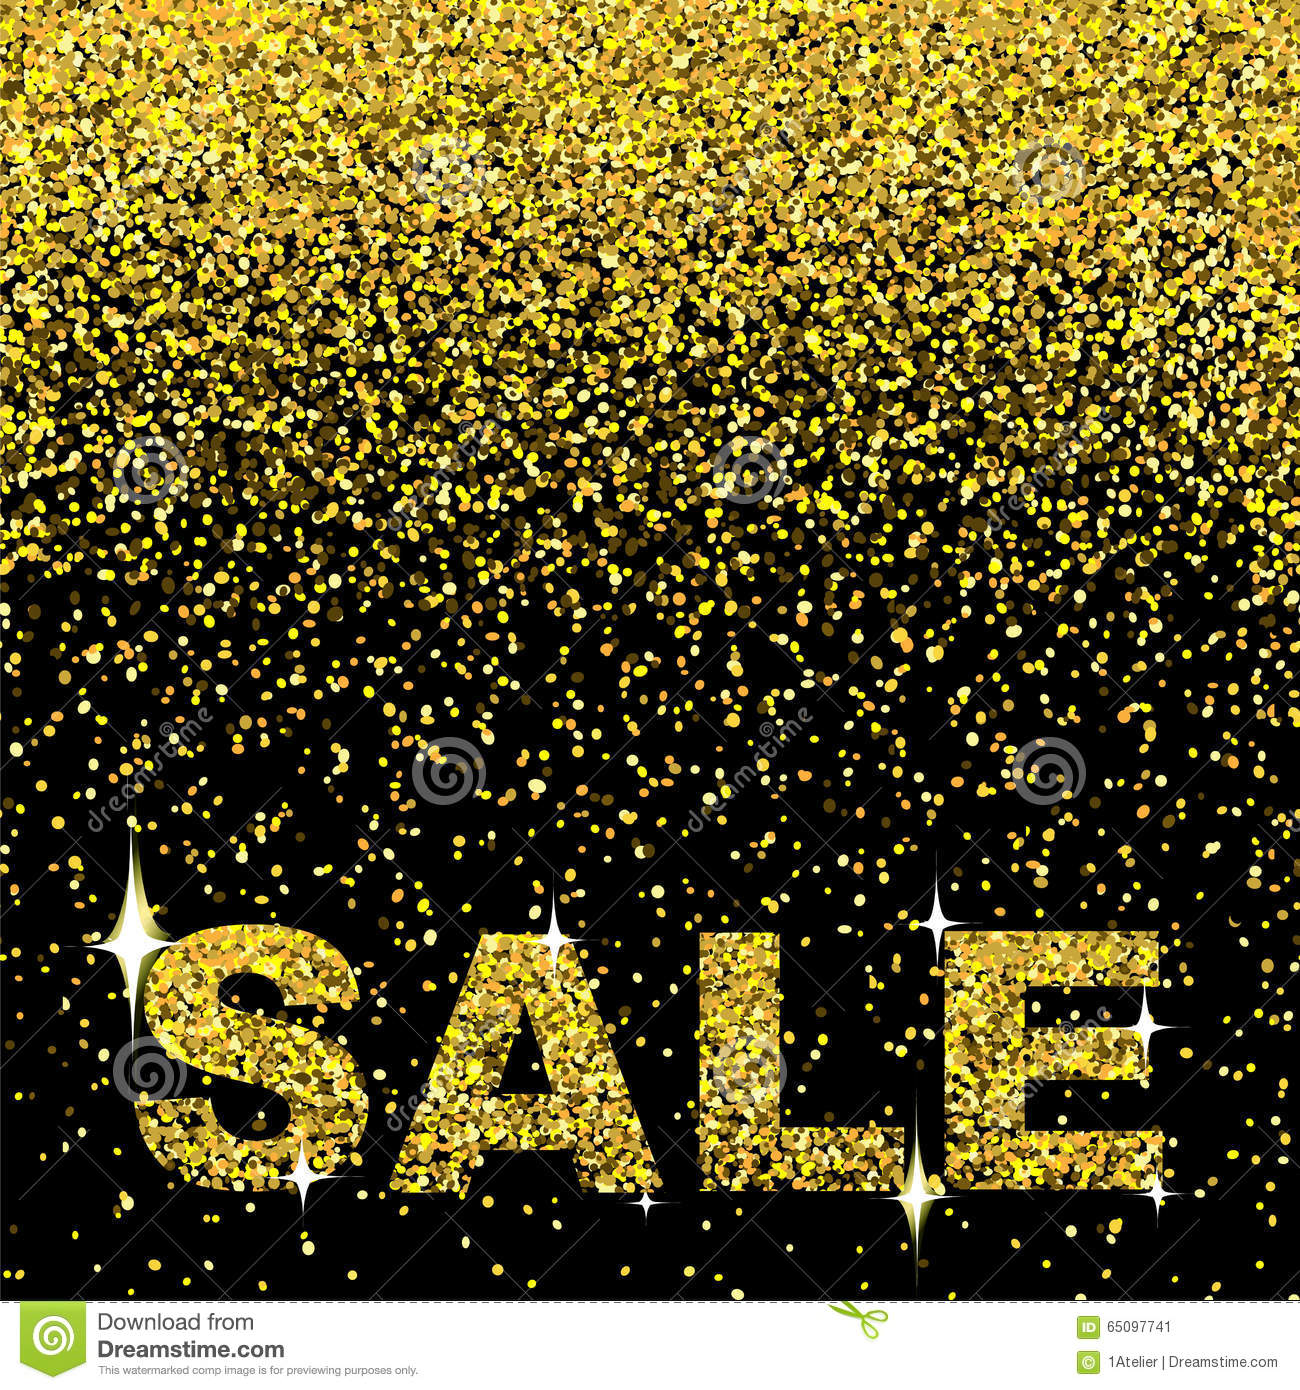 sale design with gold confetti background and gold sparks stock